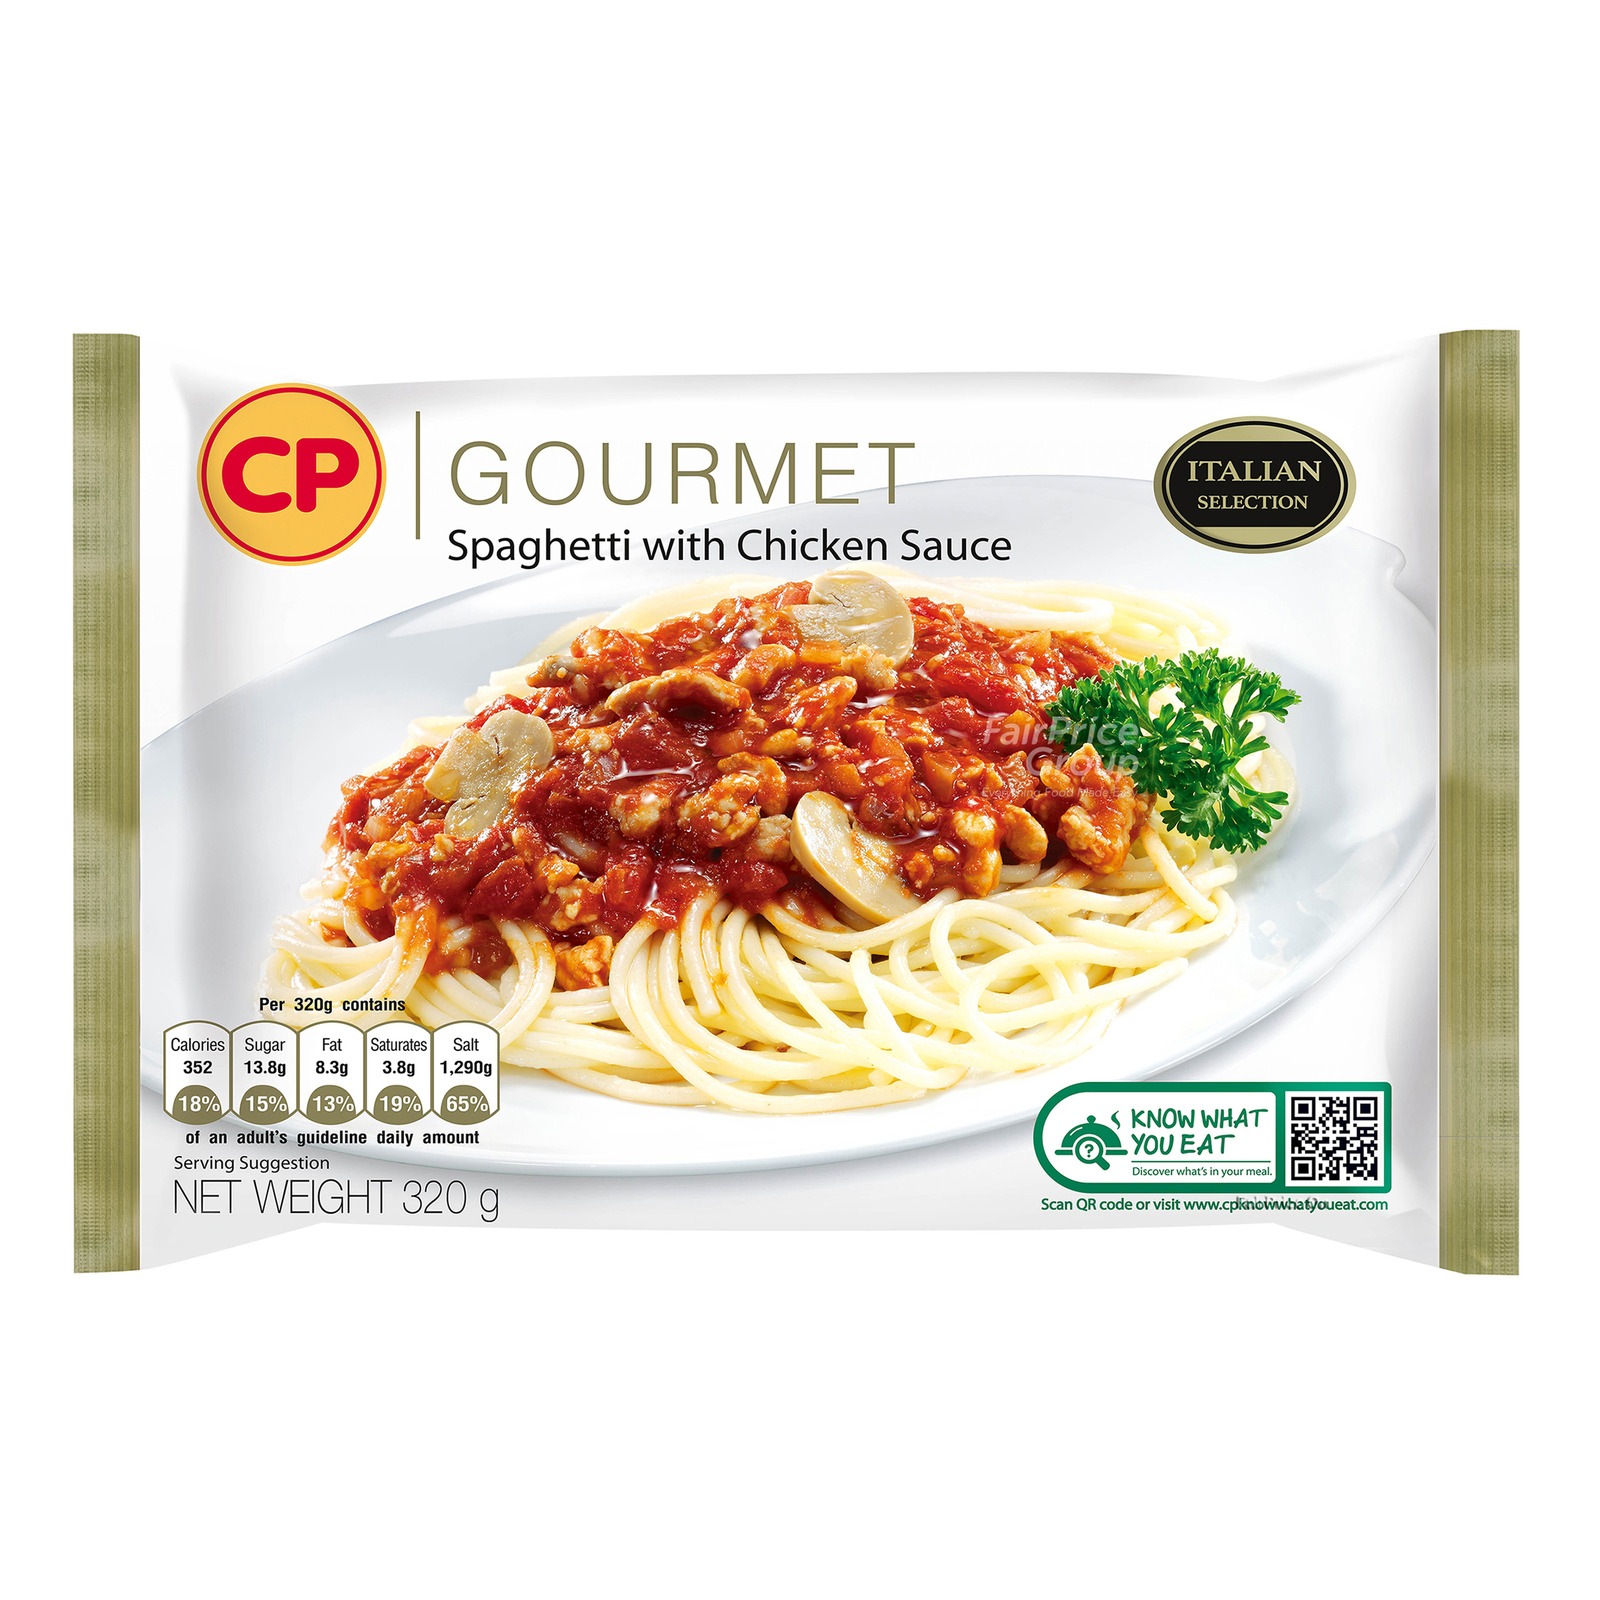 CP Gourmet Ready Meal - Spaghetti with Chicken Sauce